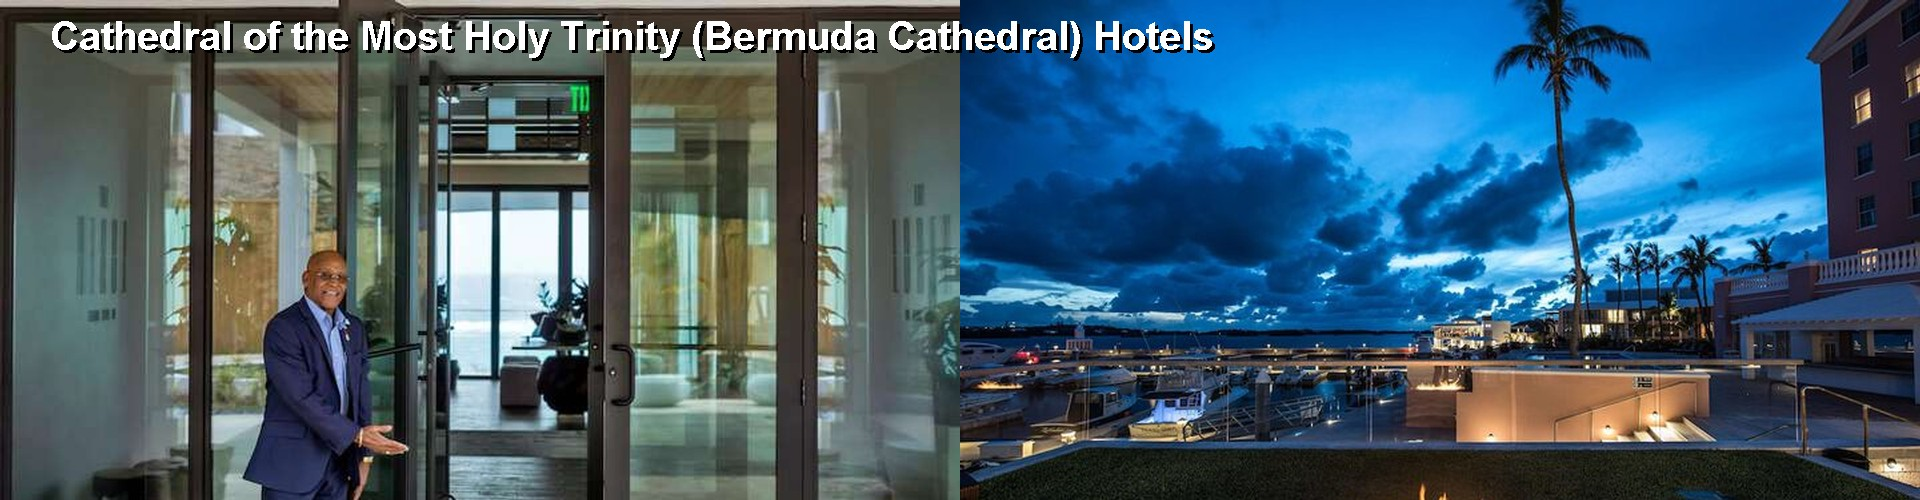 5 Best Hotels near Cathedral of the Most Holy Trinity (Bermuda Cathedral)